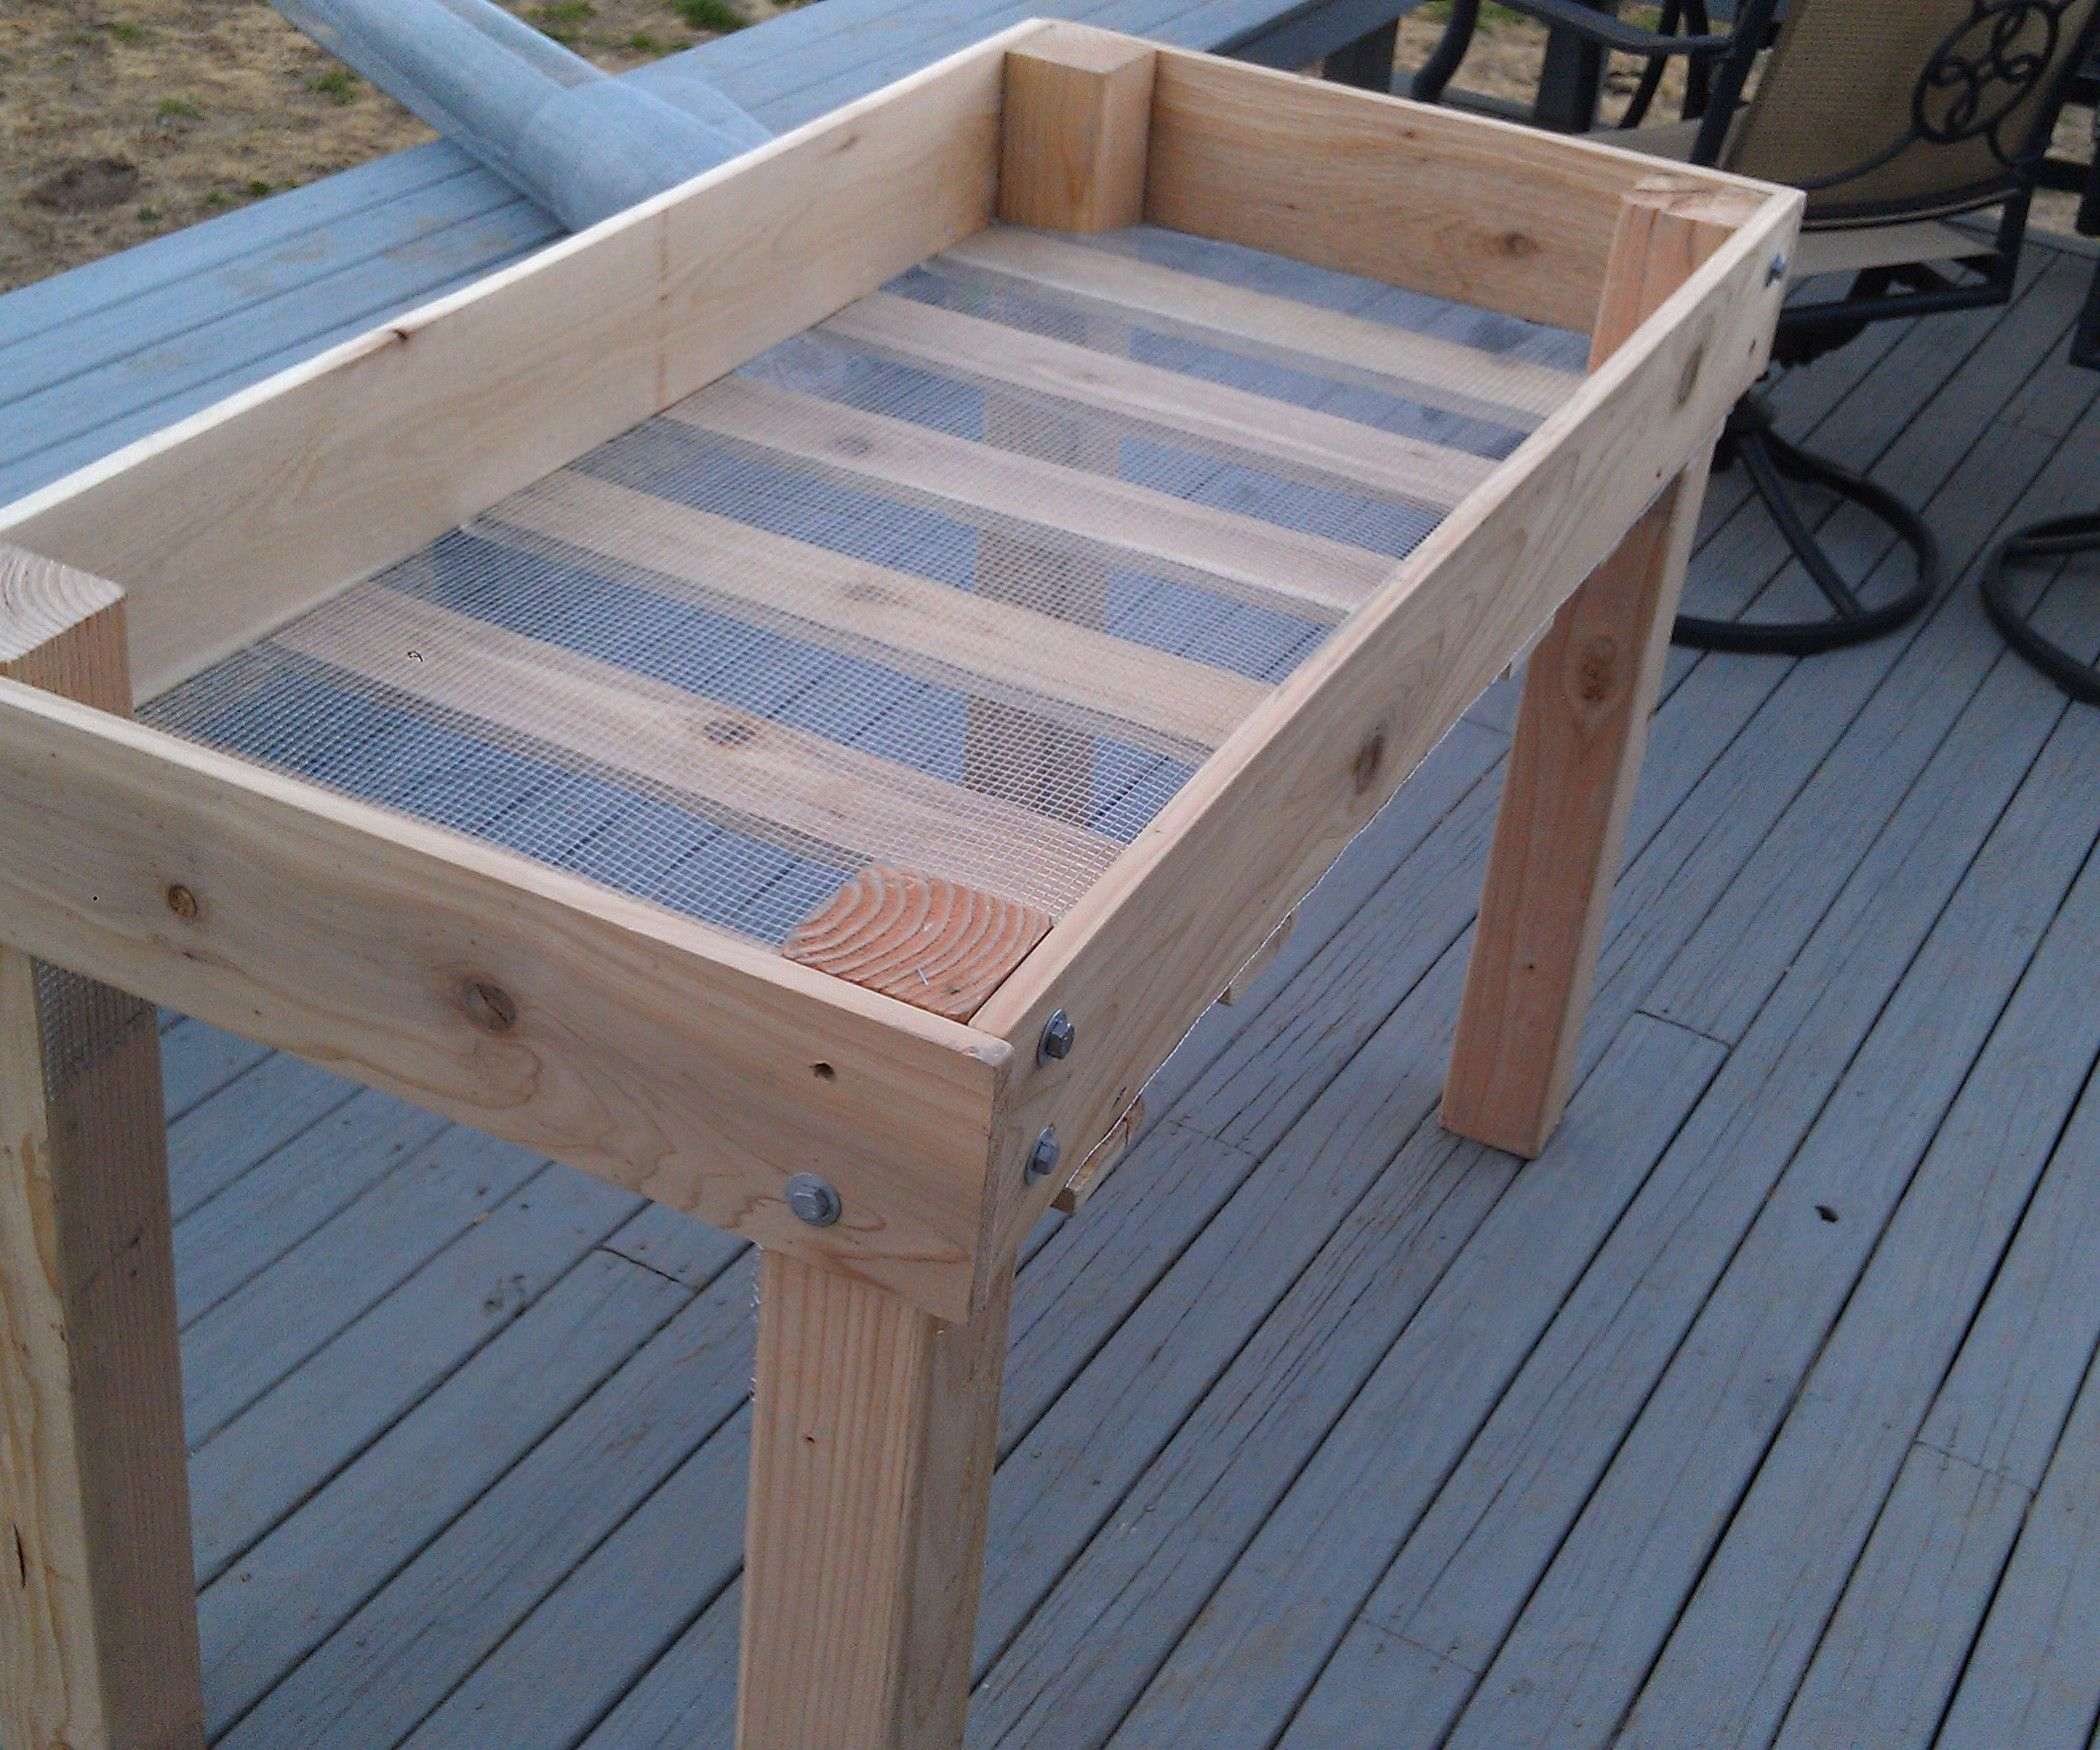 Diy Raised Bed Planter Cedar Posts Planters And Raising